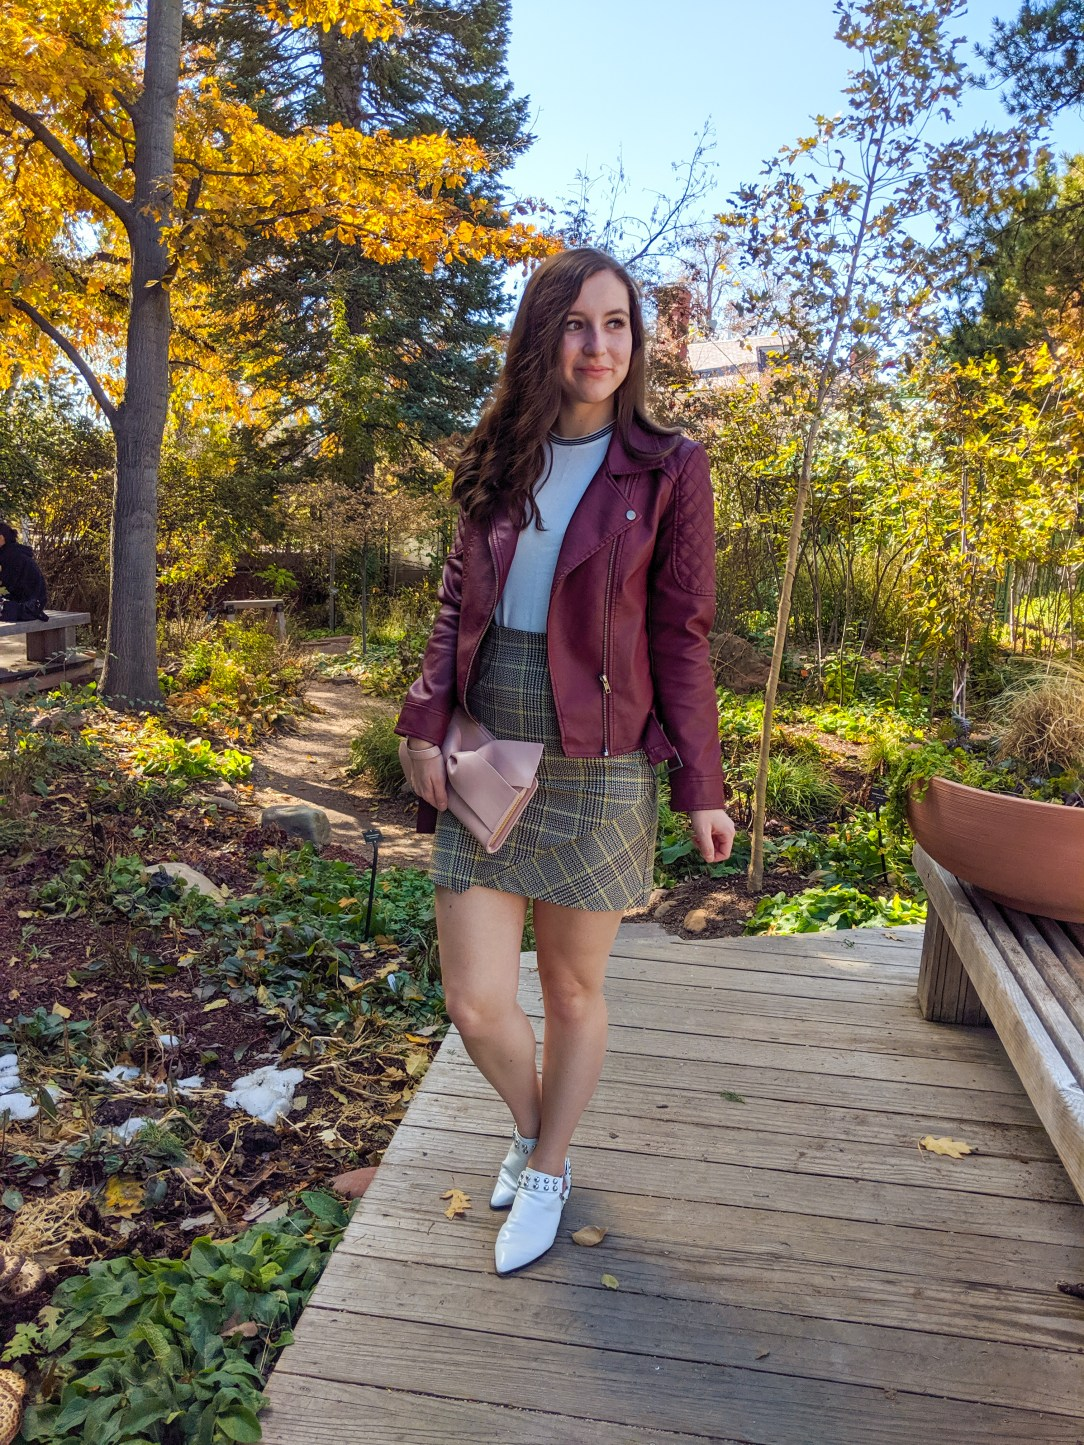 fall season, fall fashion, burgundy jacket, changing leaves